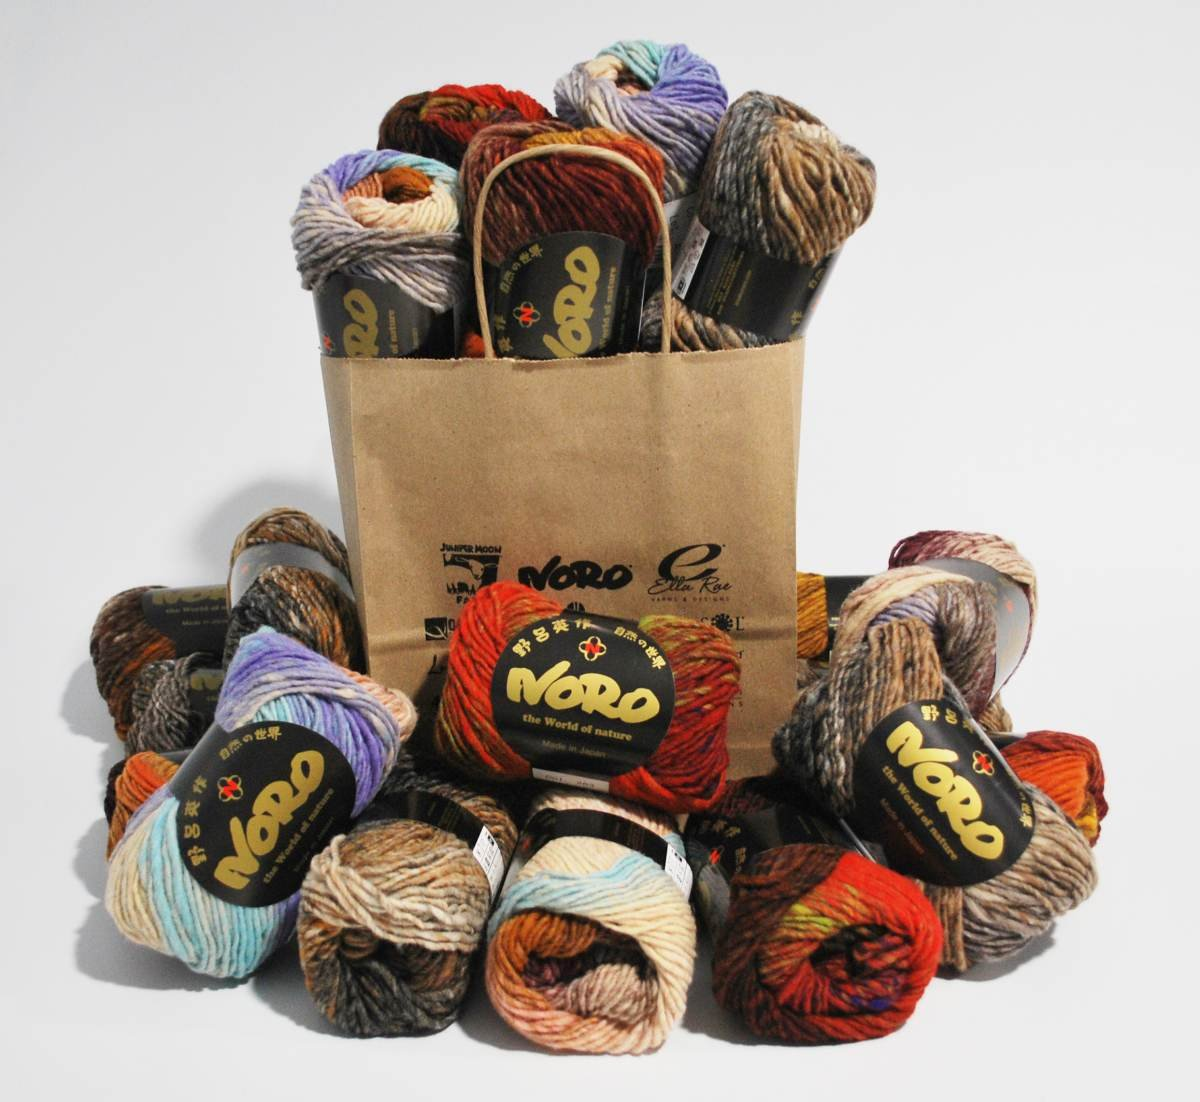 Heart Blanket Kit from Noro